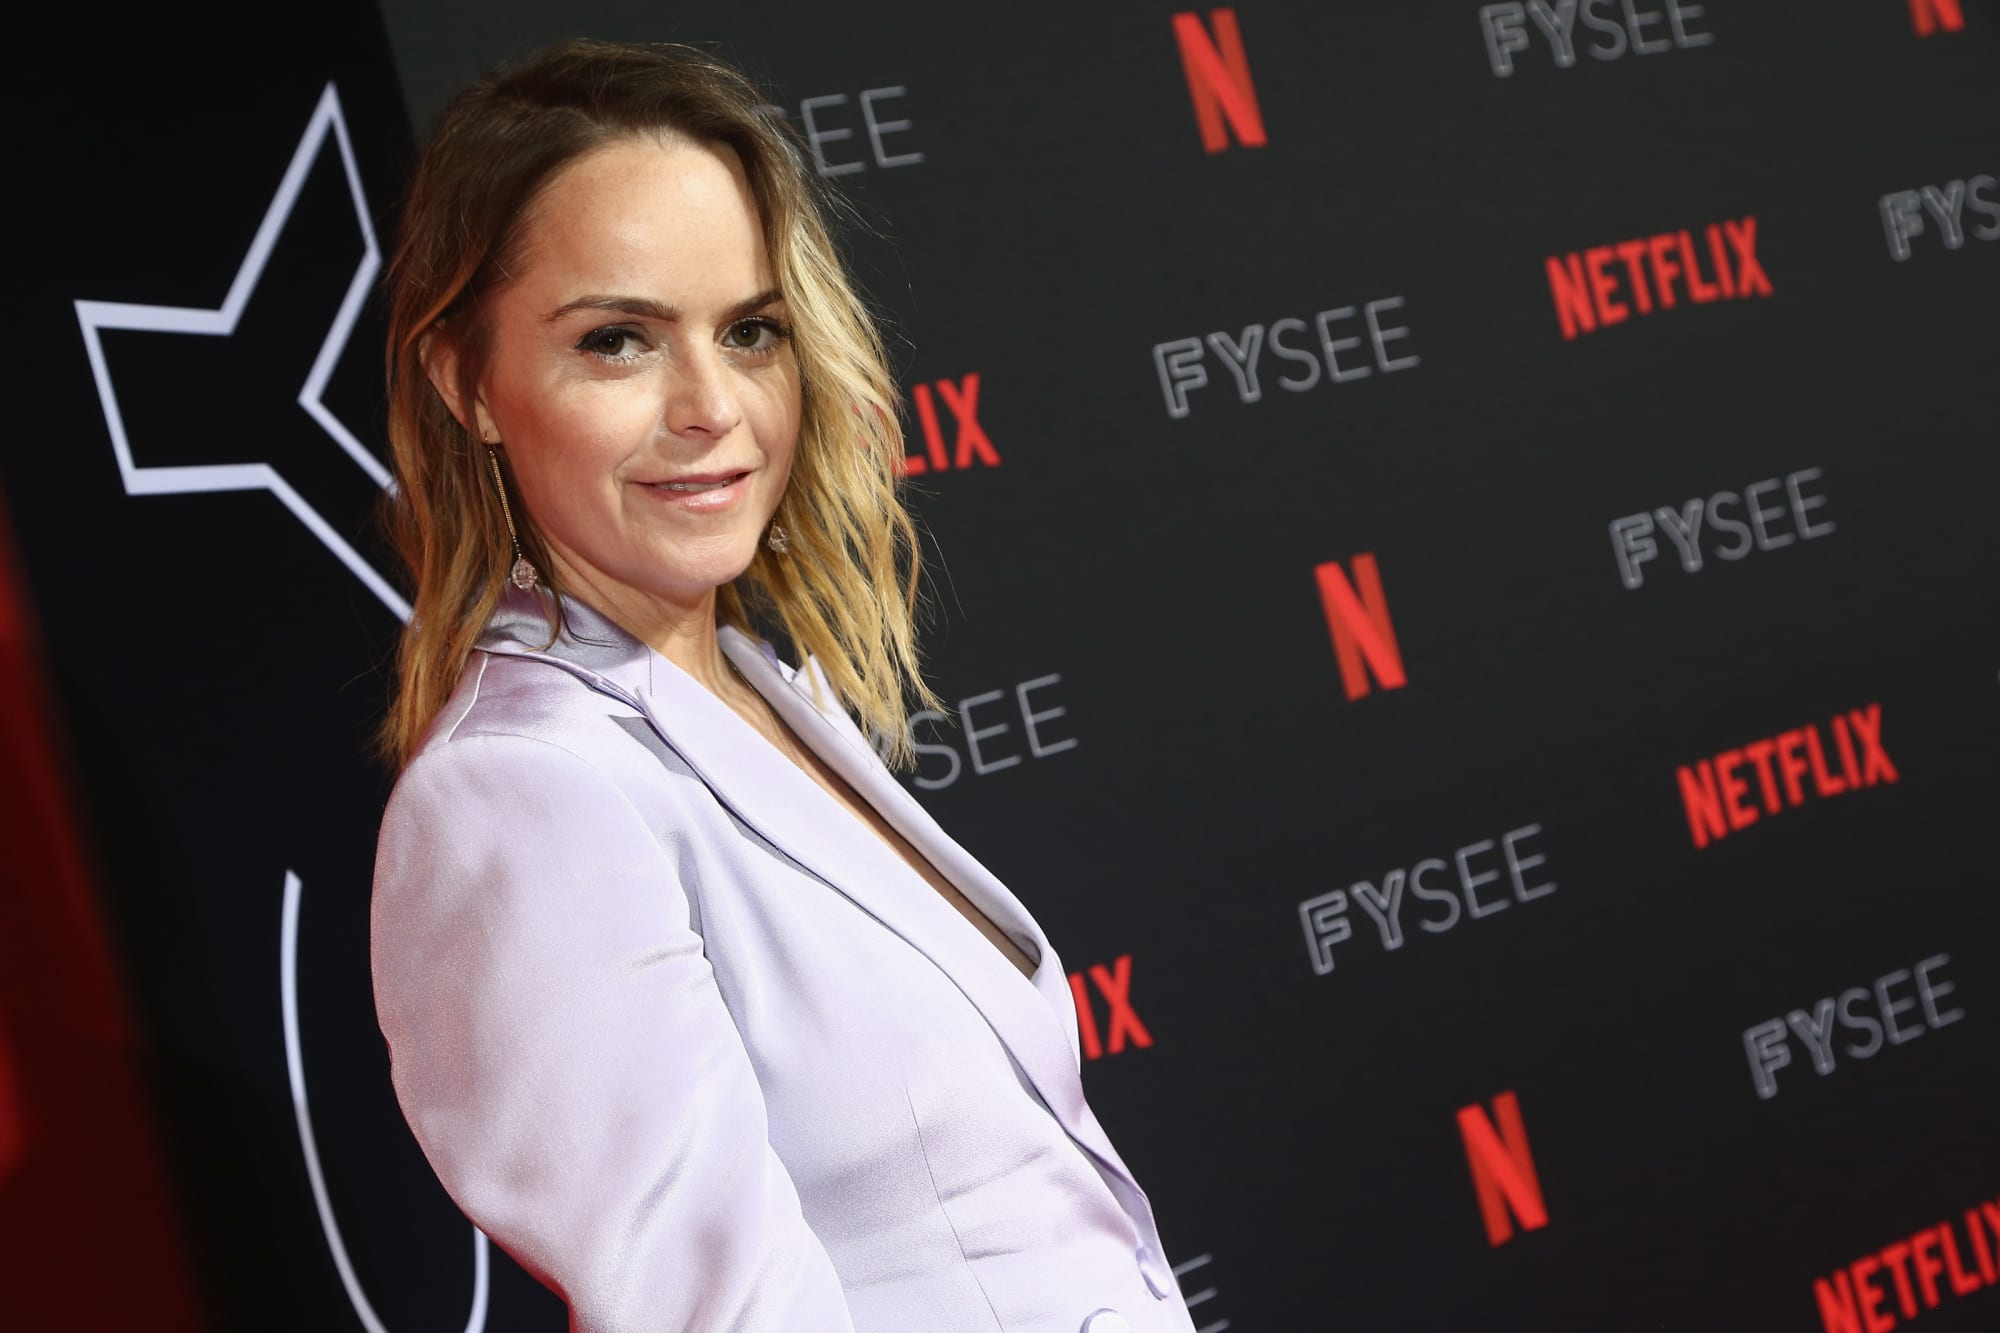 Taryn Manning: Are we ready for Karen: The Movie?